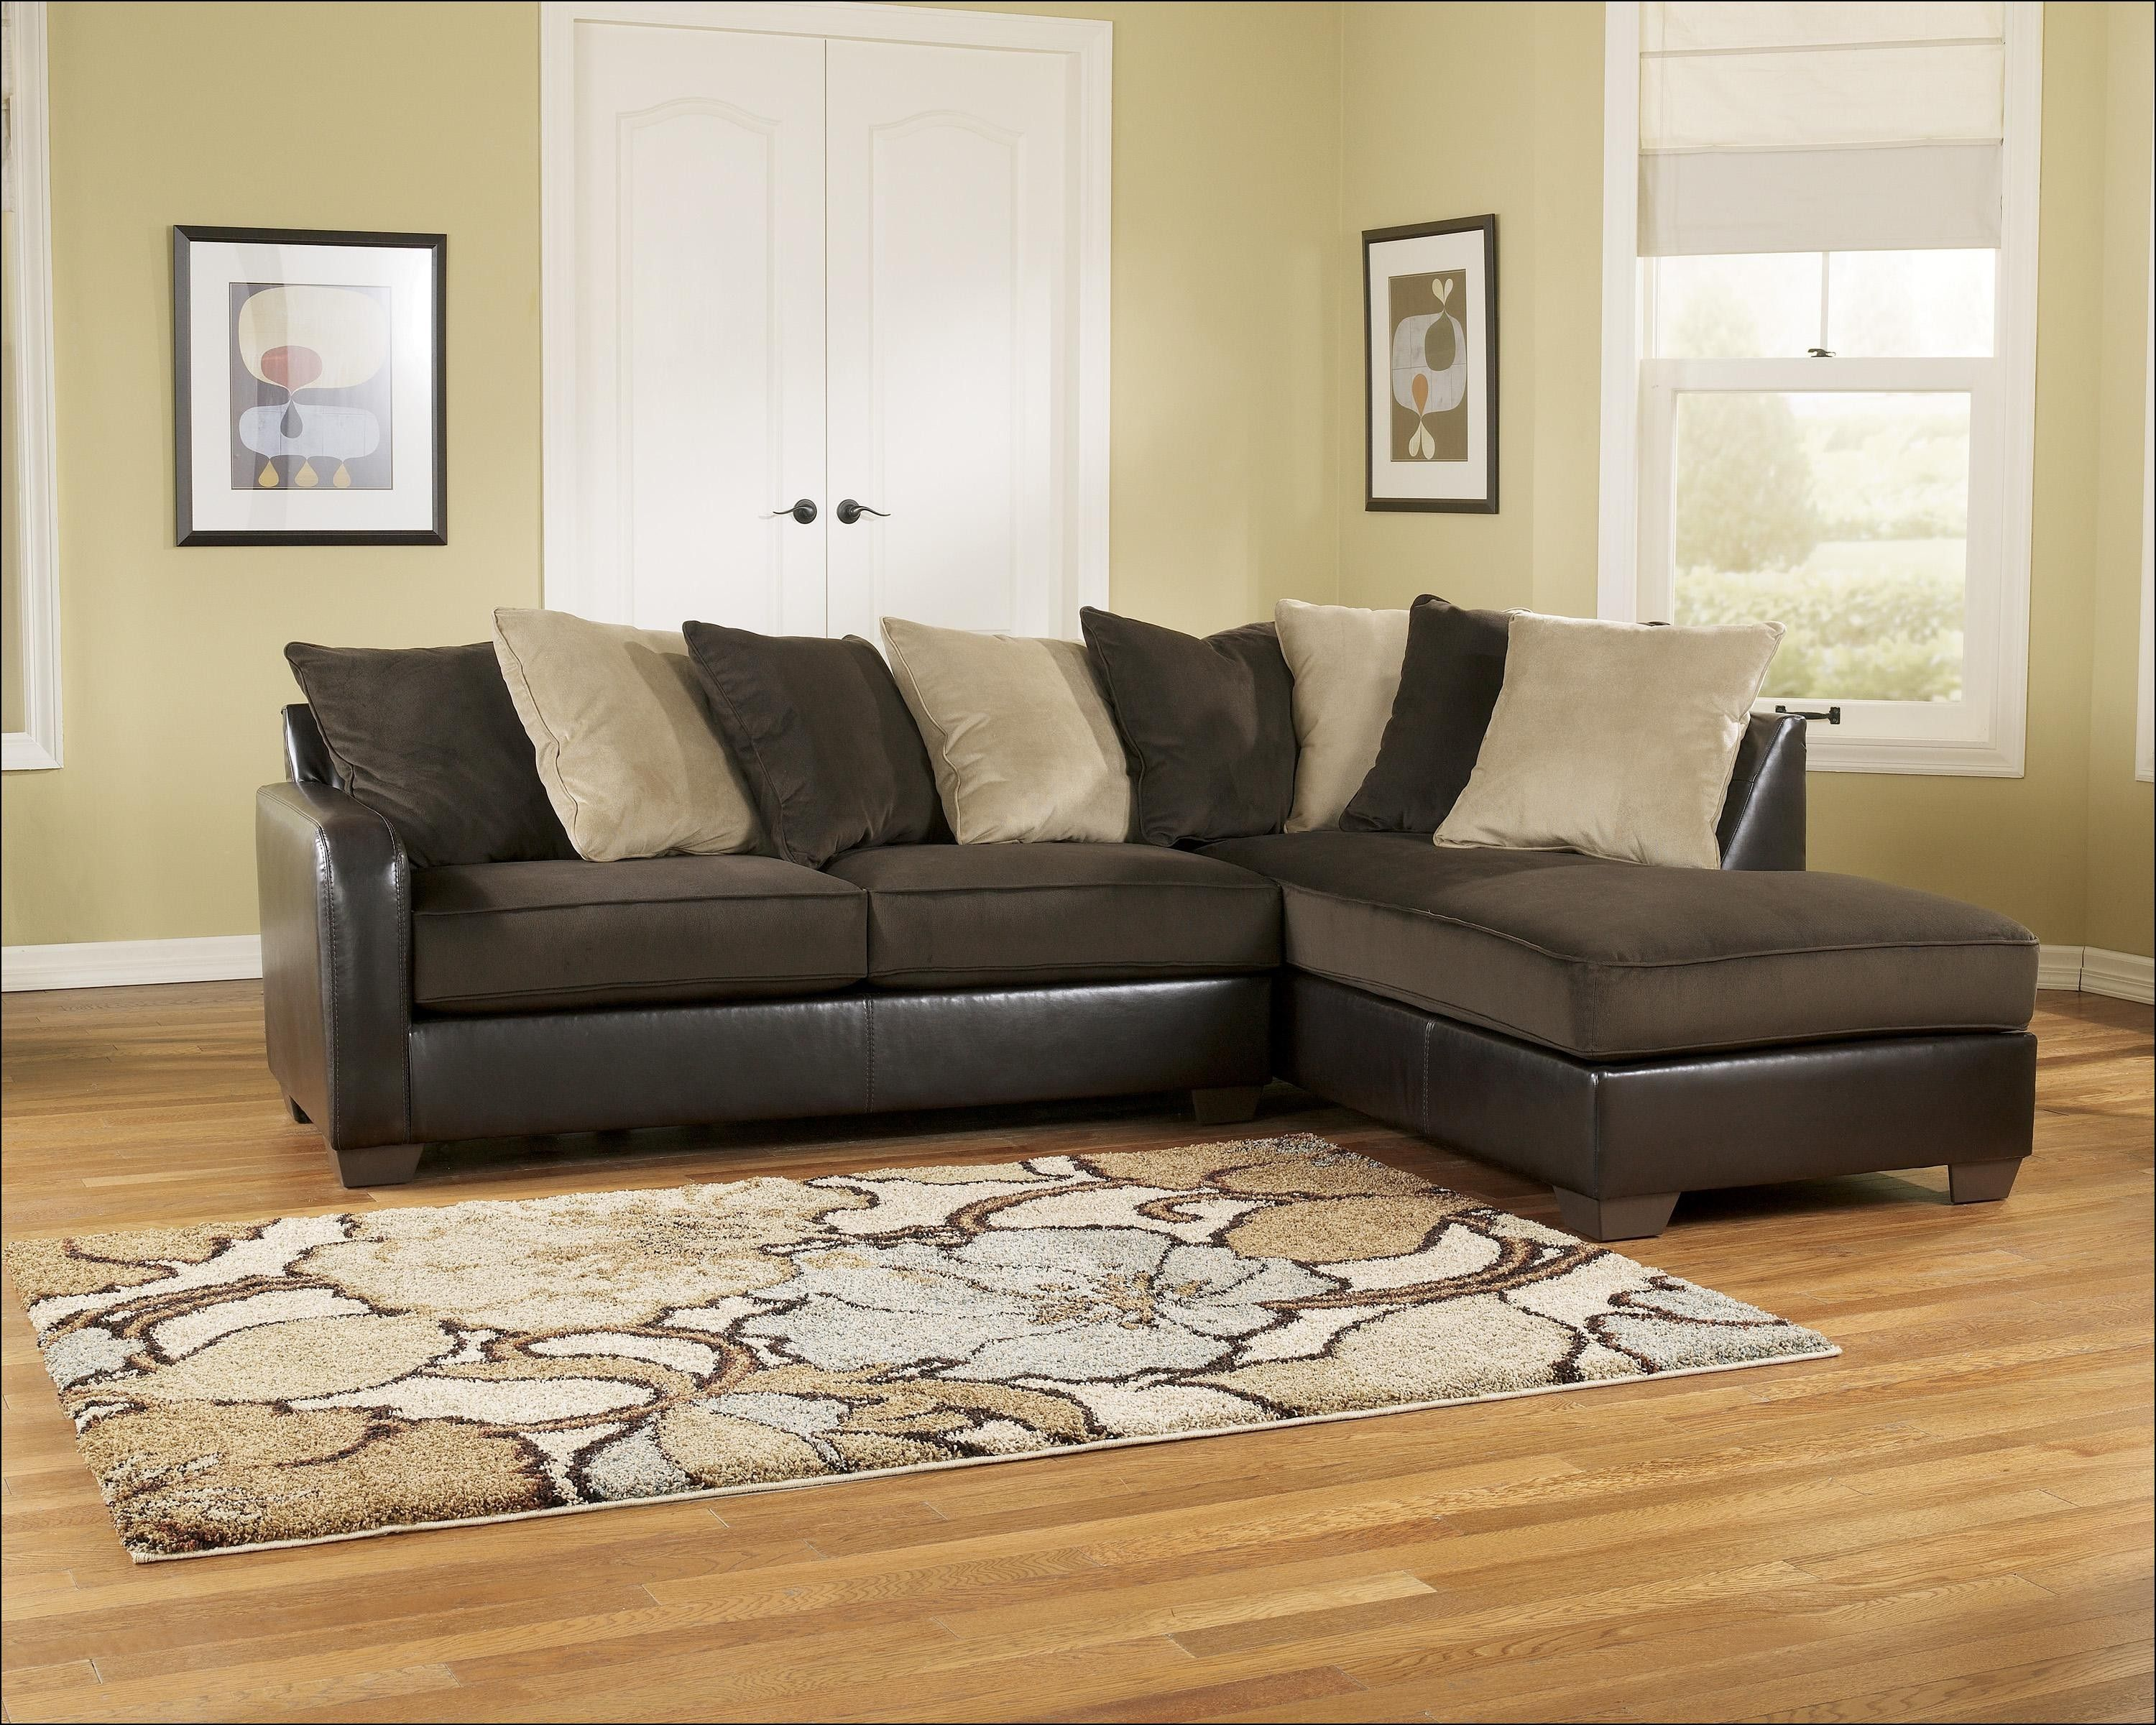 Gemini - Chocolate RAF Chaise Sectional by Ashley Furniture : ashley furniture victory sectional - Sectionals, Sofas & Couches